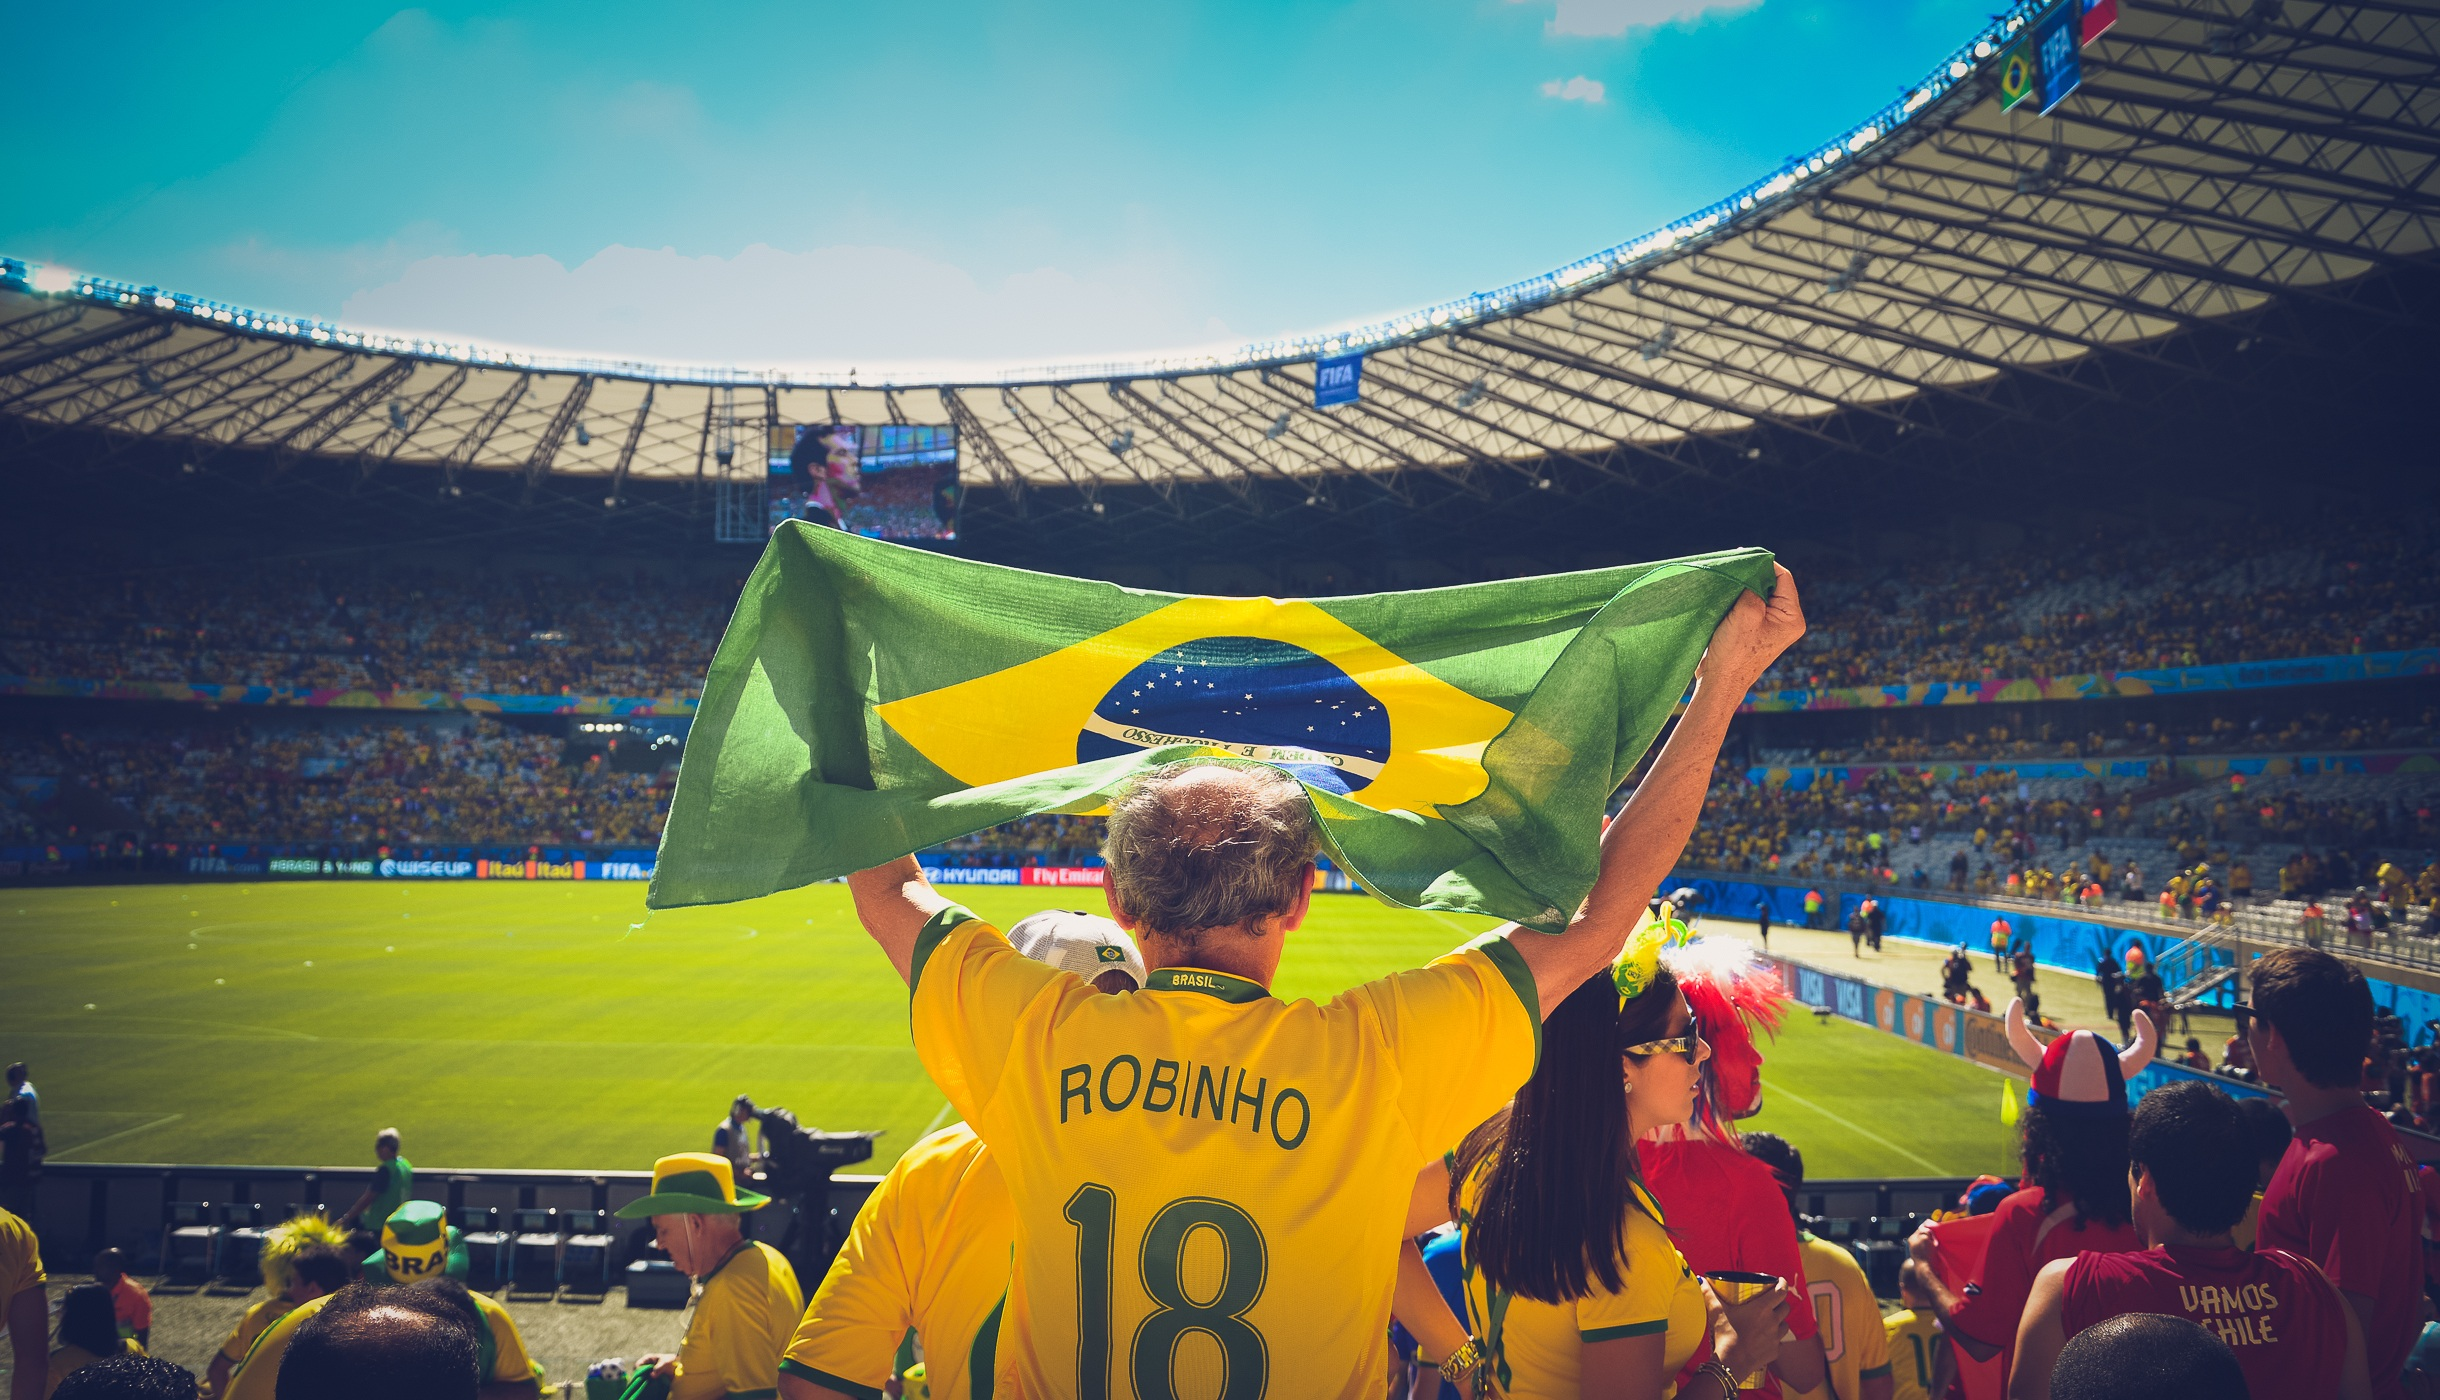 A Brazil fan awaits kick off at the 2018 FIFA World Cup in Russia.